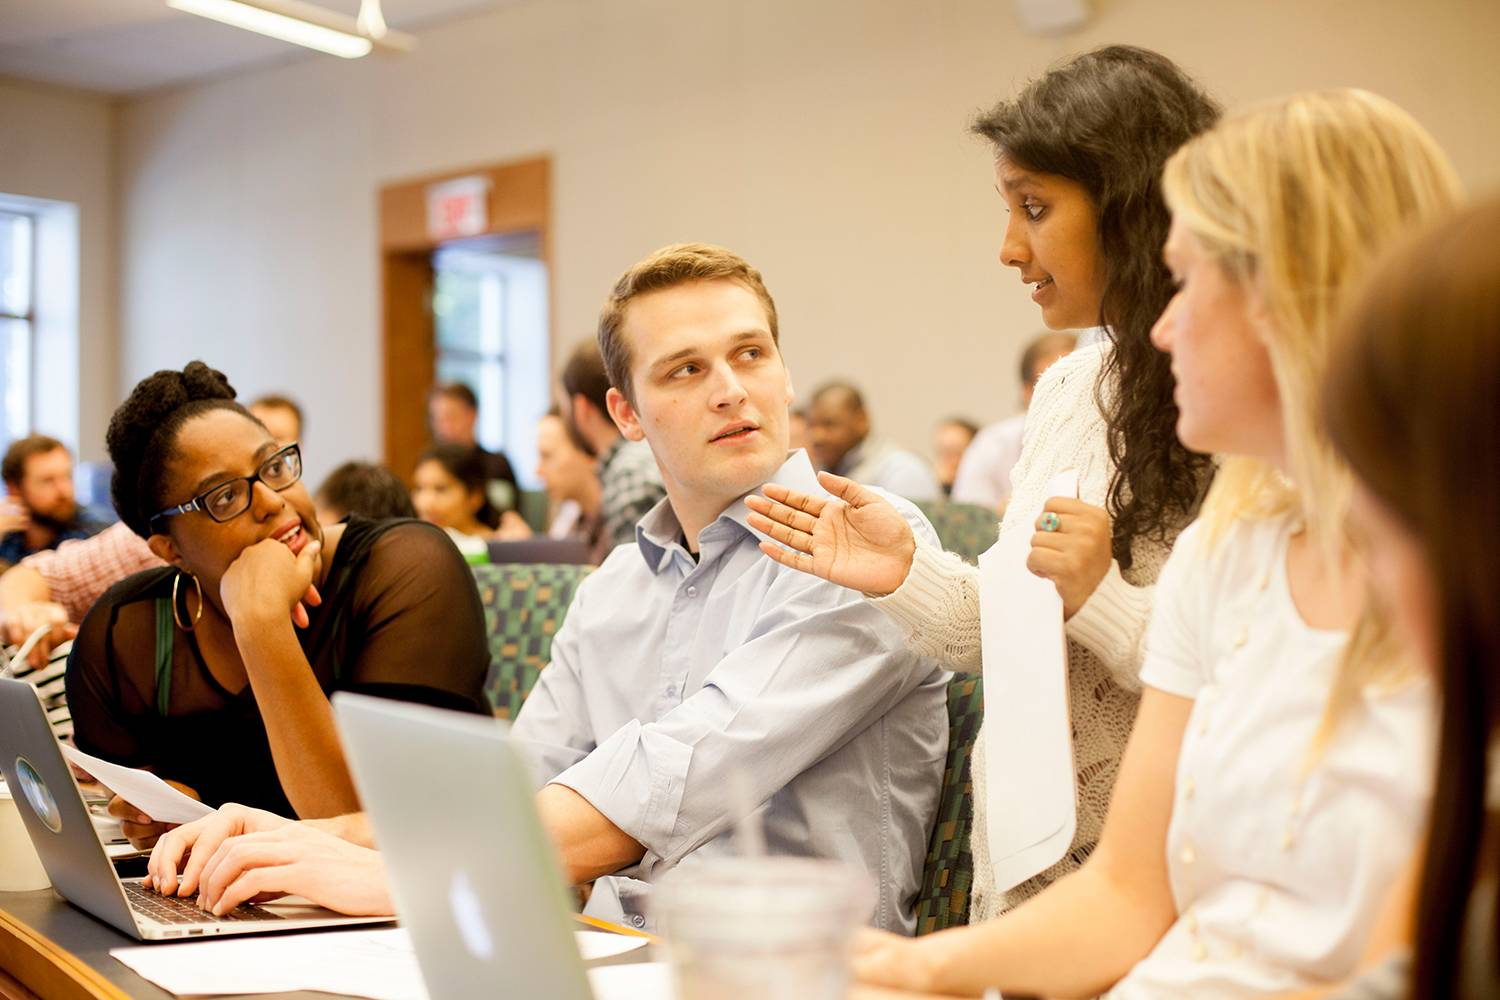 Students in Classroom at Tuck School of Business